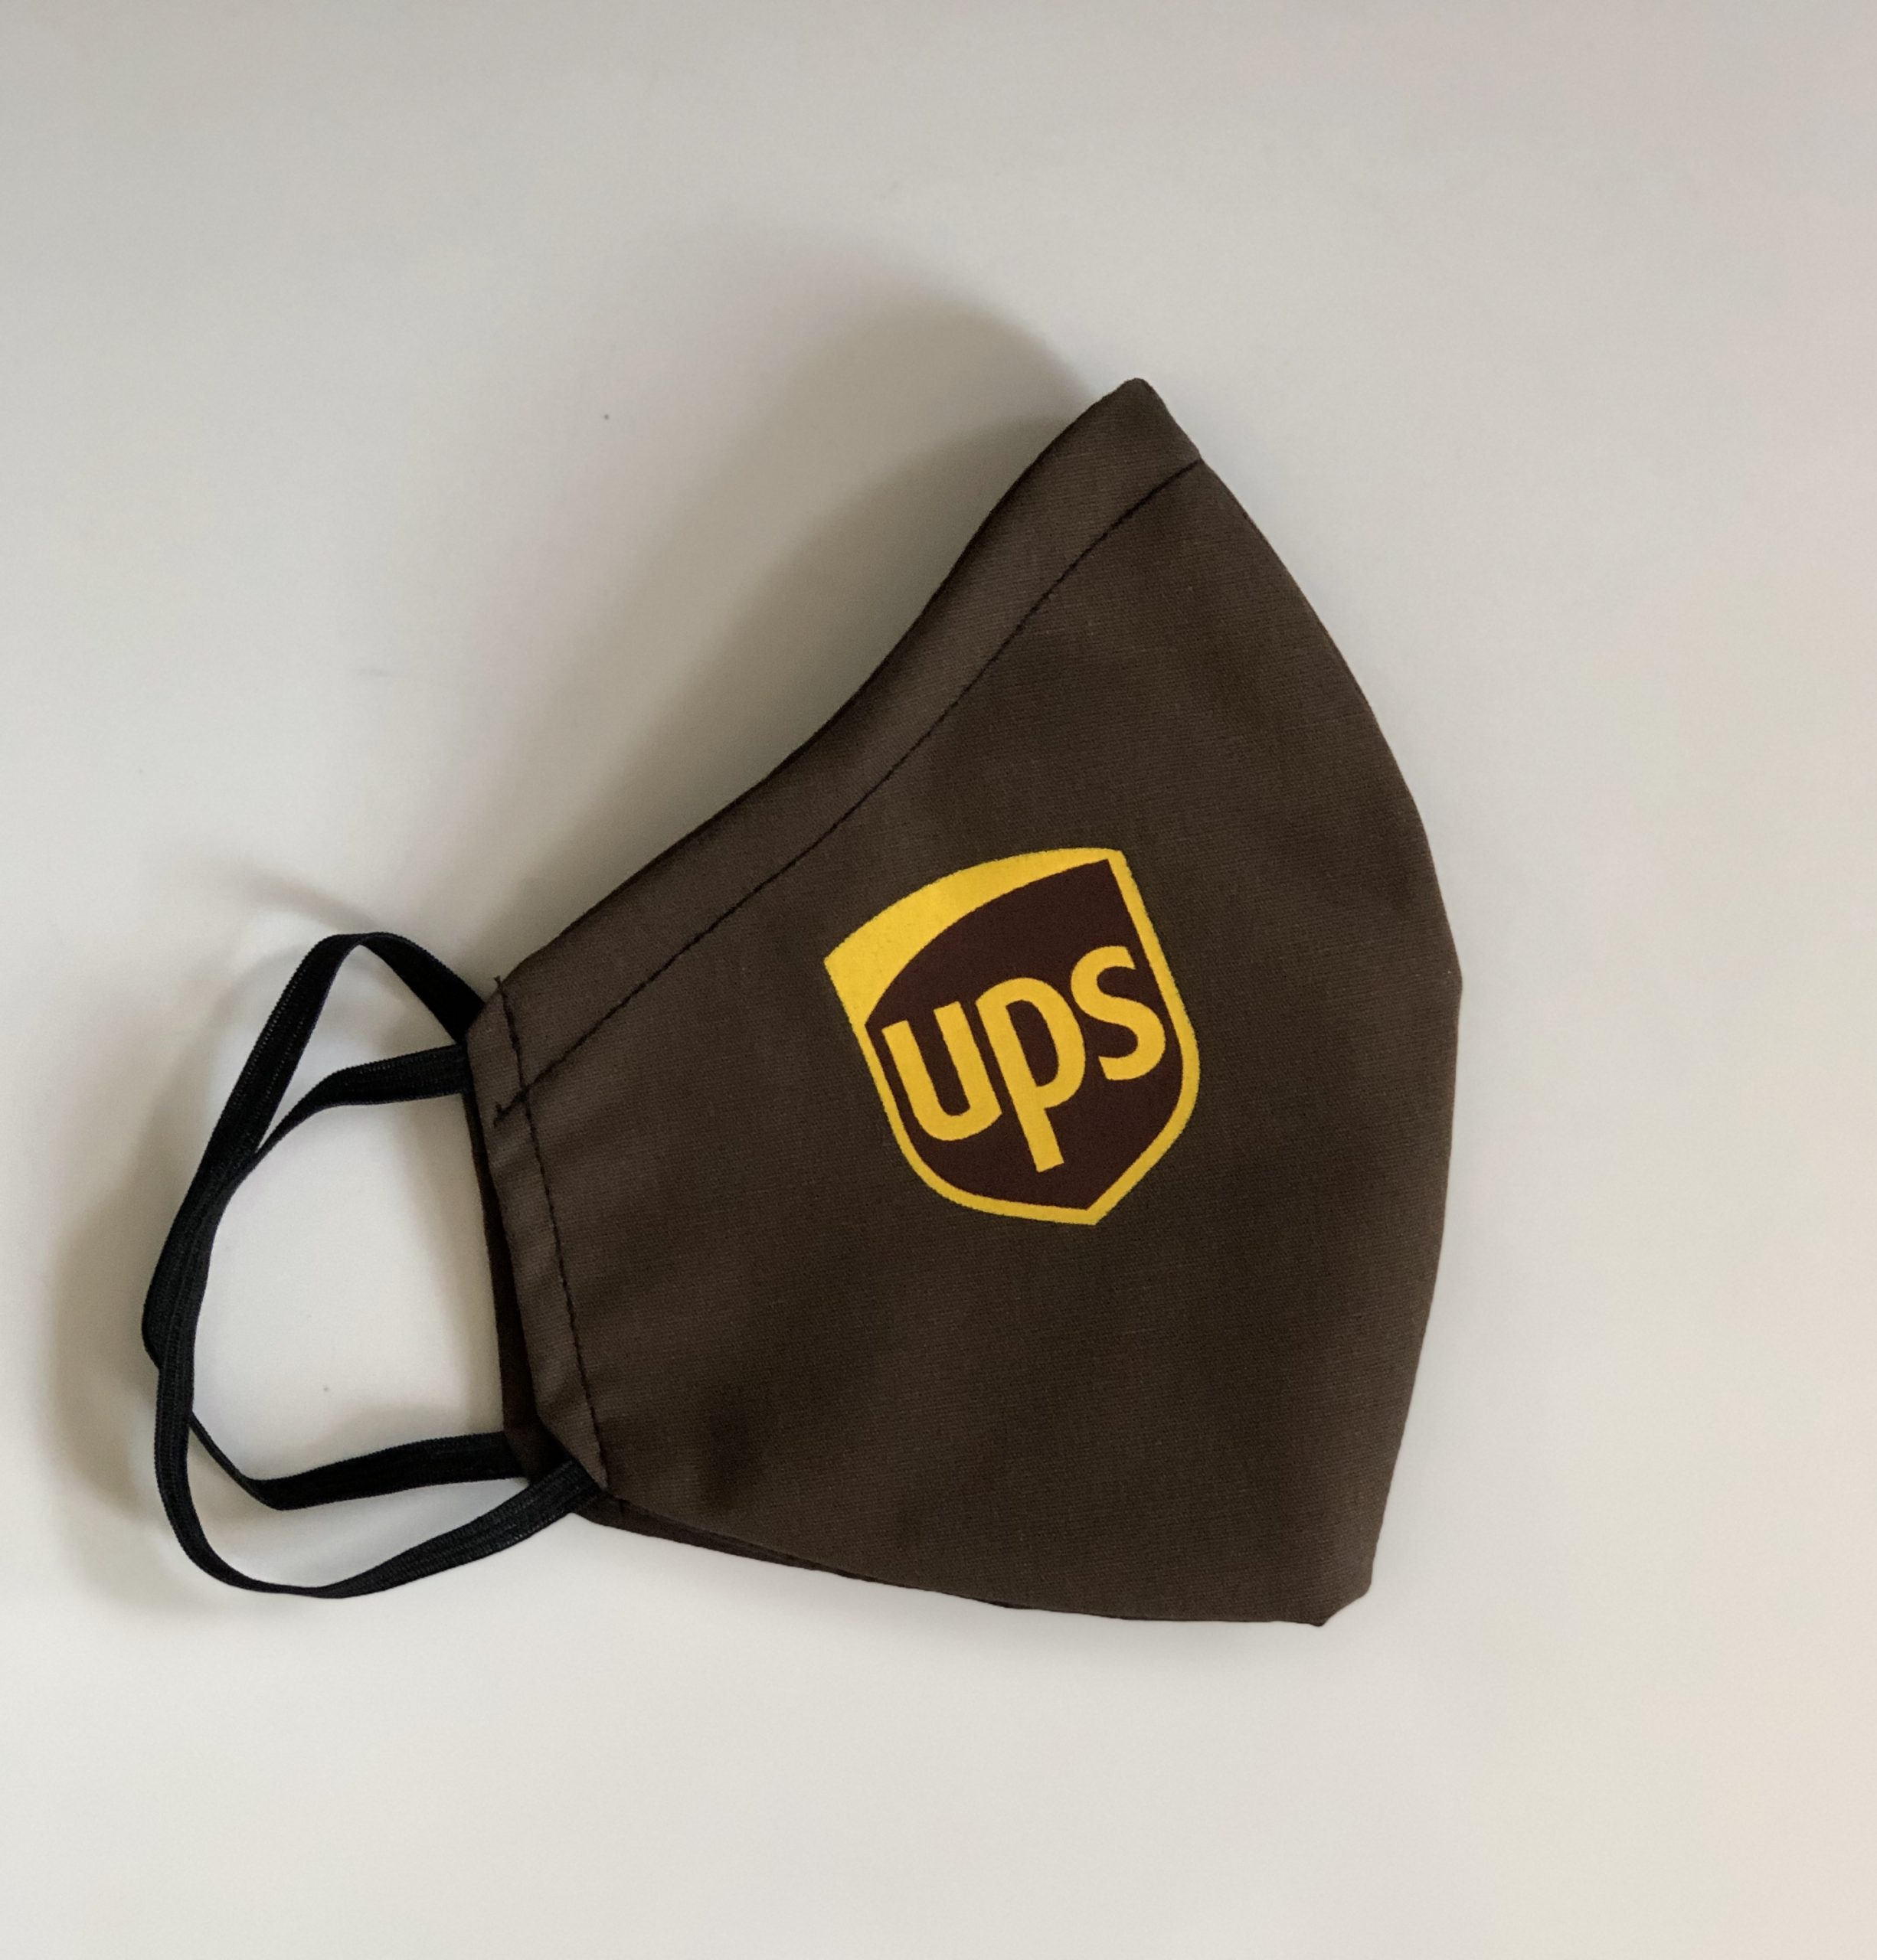 Warrior Face Mask For Ups Employees With Filter Thinking Substance